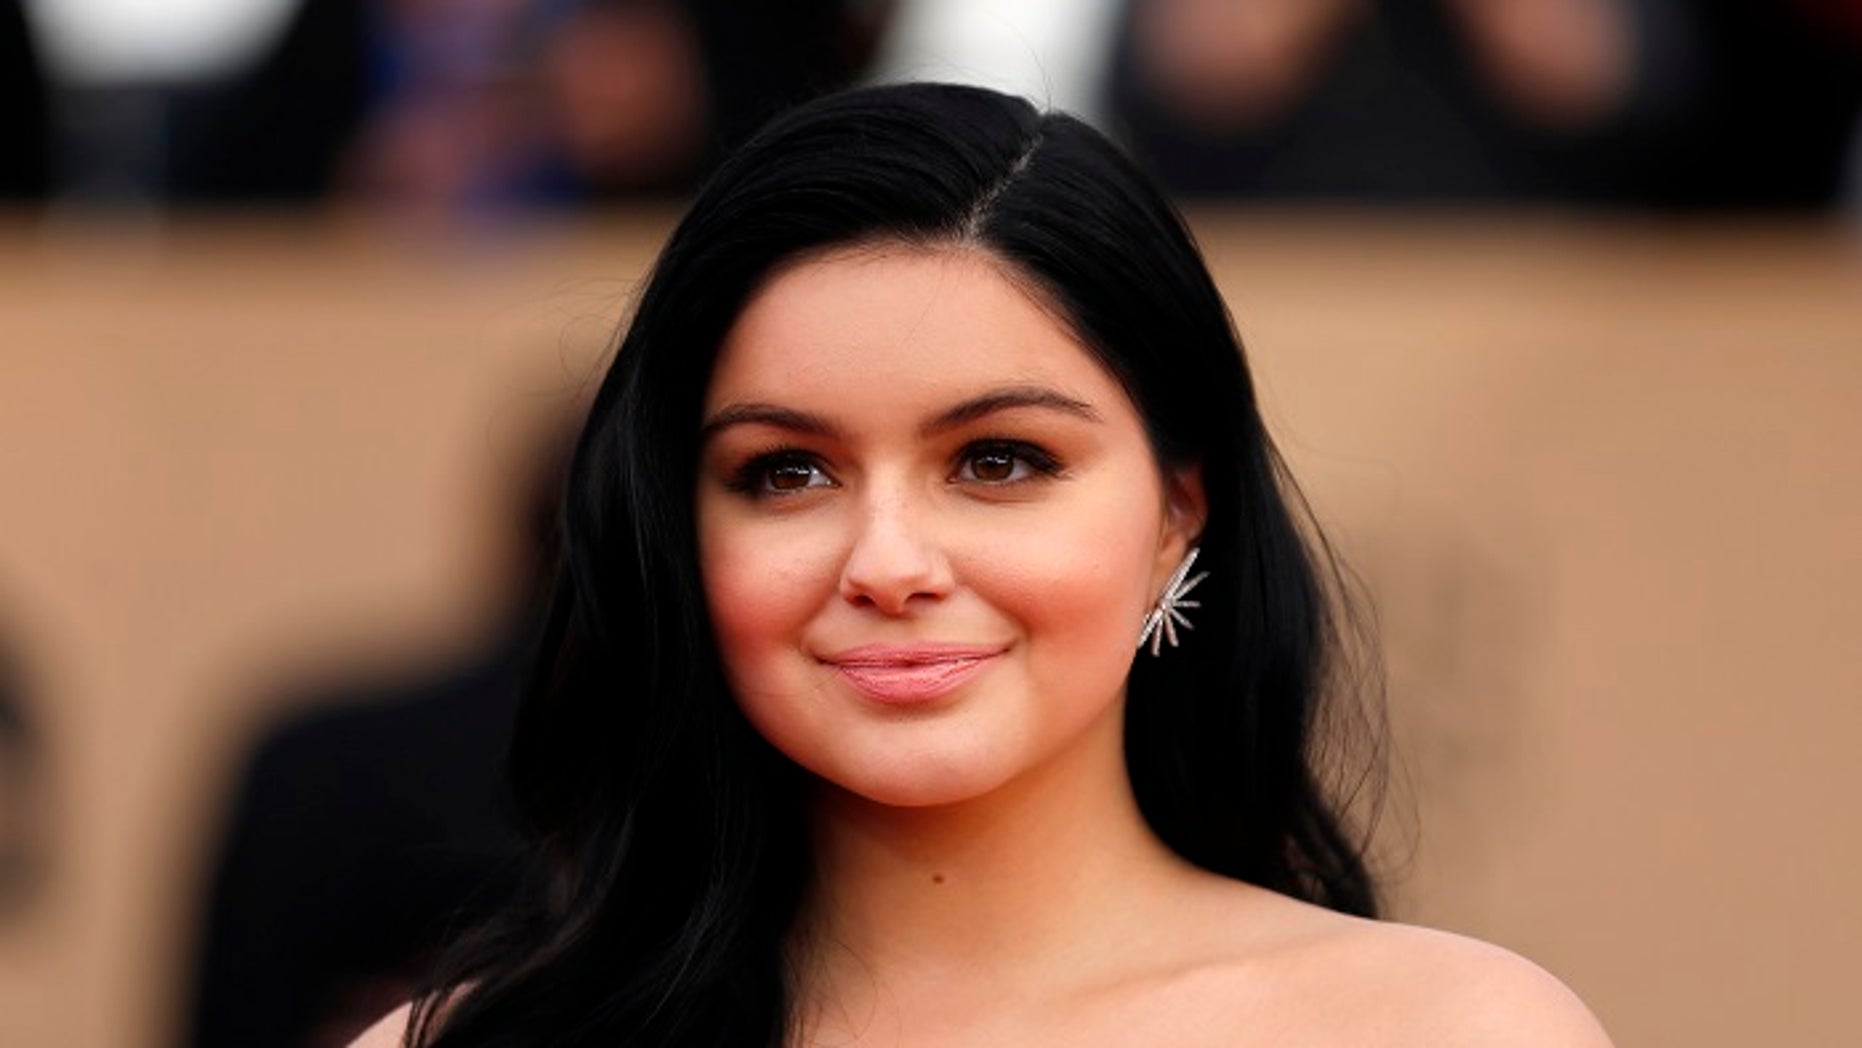 Ariel Winter says she lost weight because she changed antidepressants